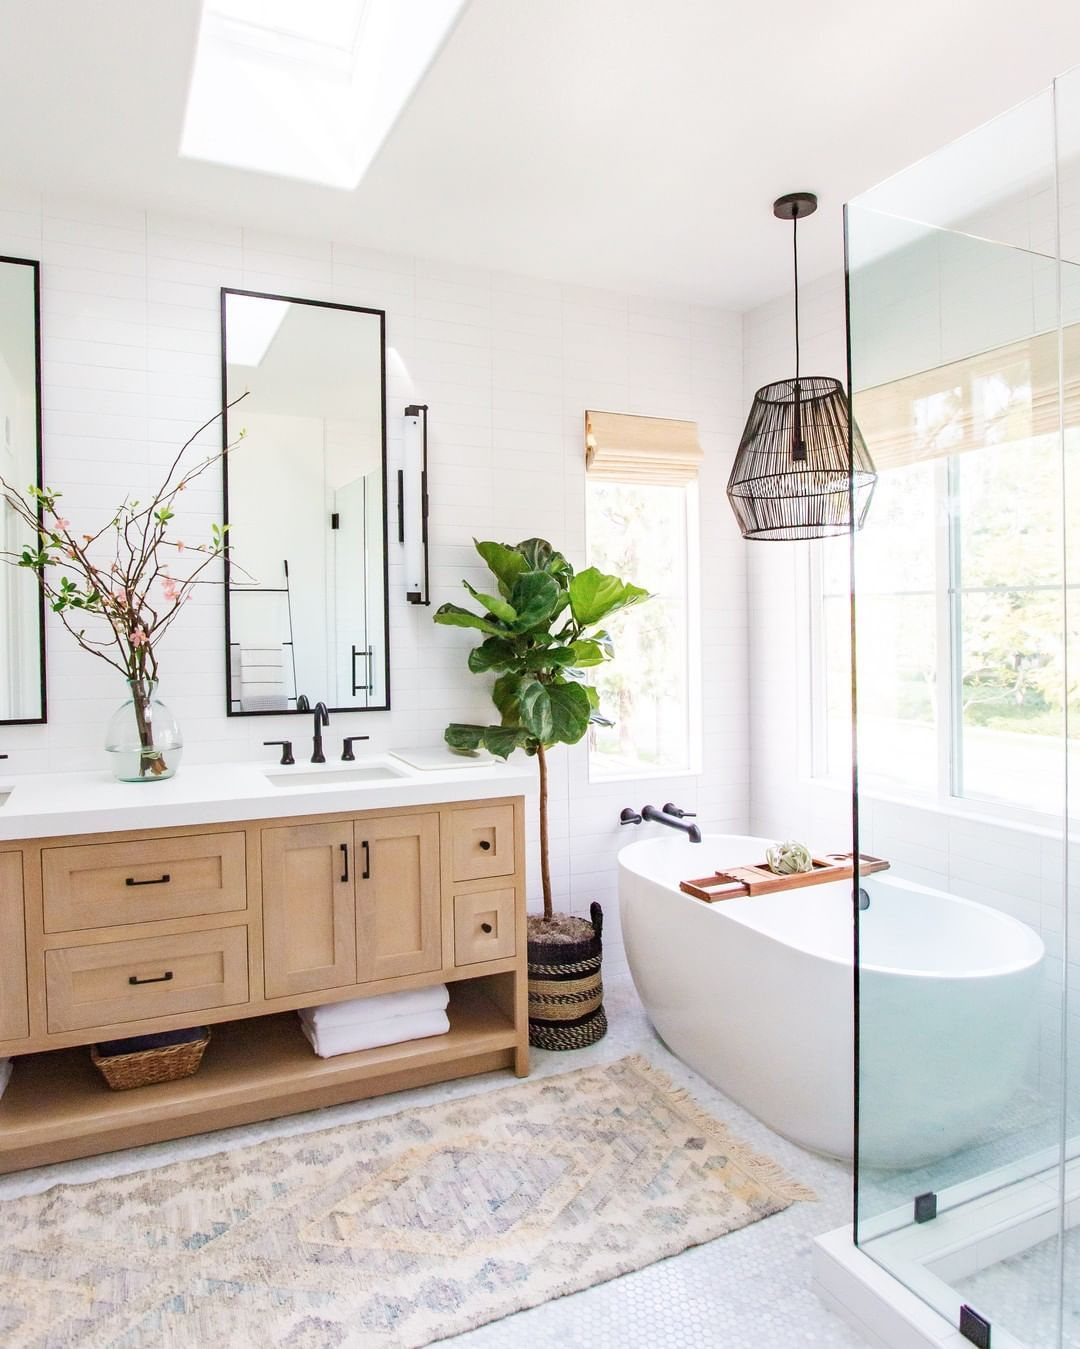 Adding Branches To My Dreamy Bathroom Sets A Different Tone Isn T It Amazing How Adding Di Modern Master Bathroom Bathroom Storage Solutions Bathrooms Remodel